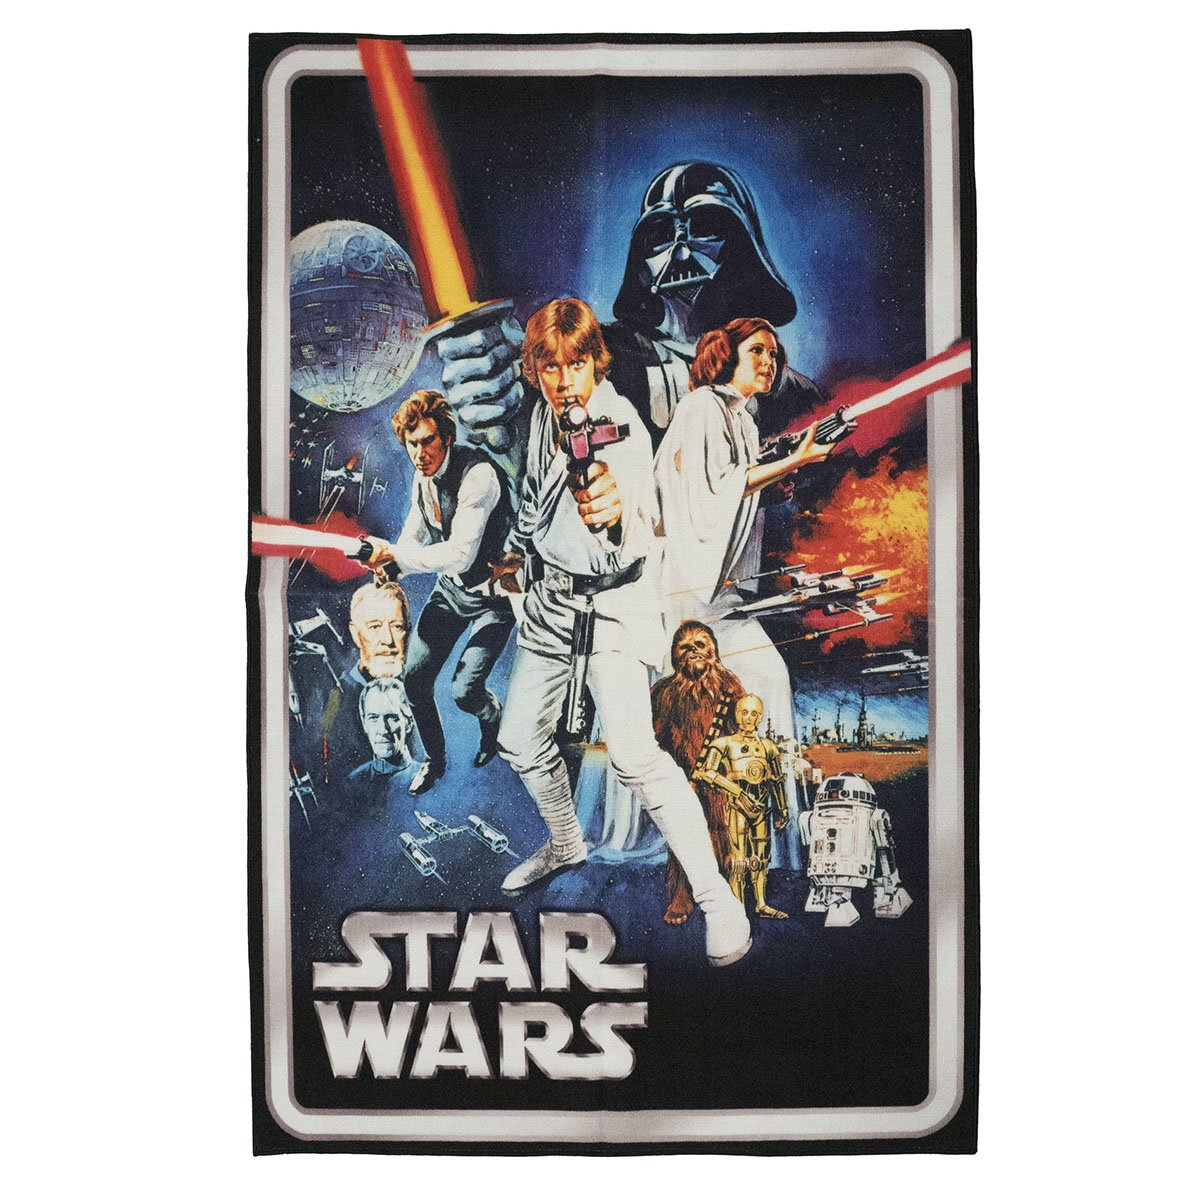 Gertmenian: Star Wars HD Digital Retro Collection 'A New Hope' Classic Bedding Area Rug 54x78 inch, Large, Blue